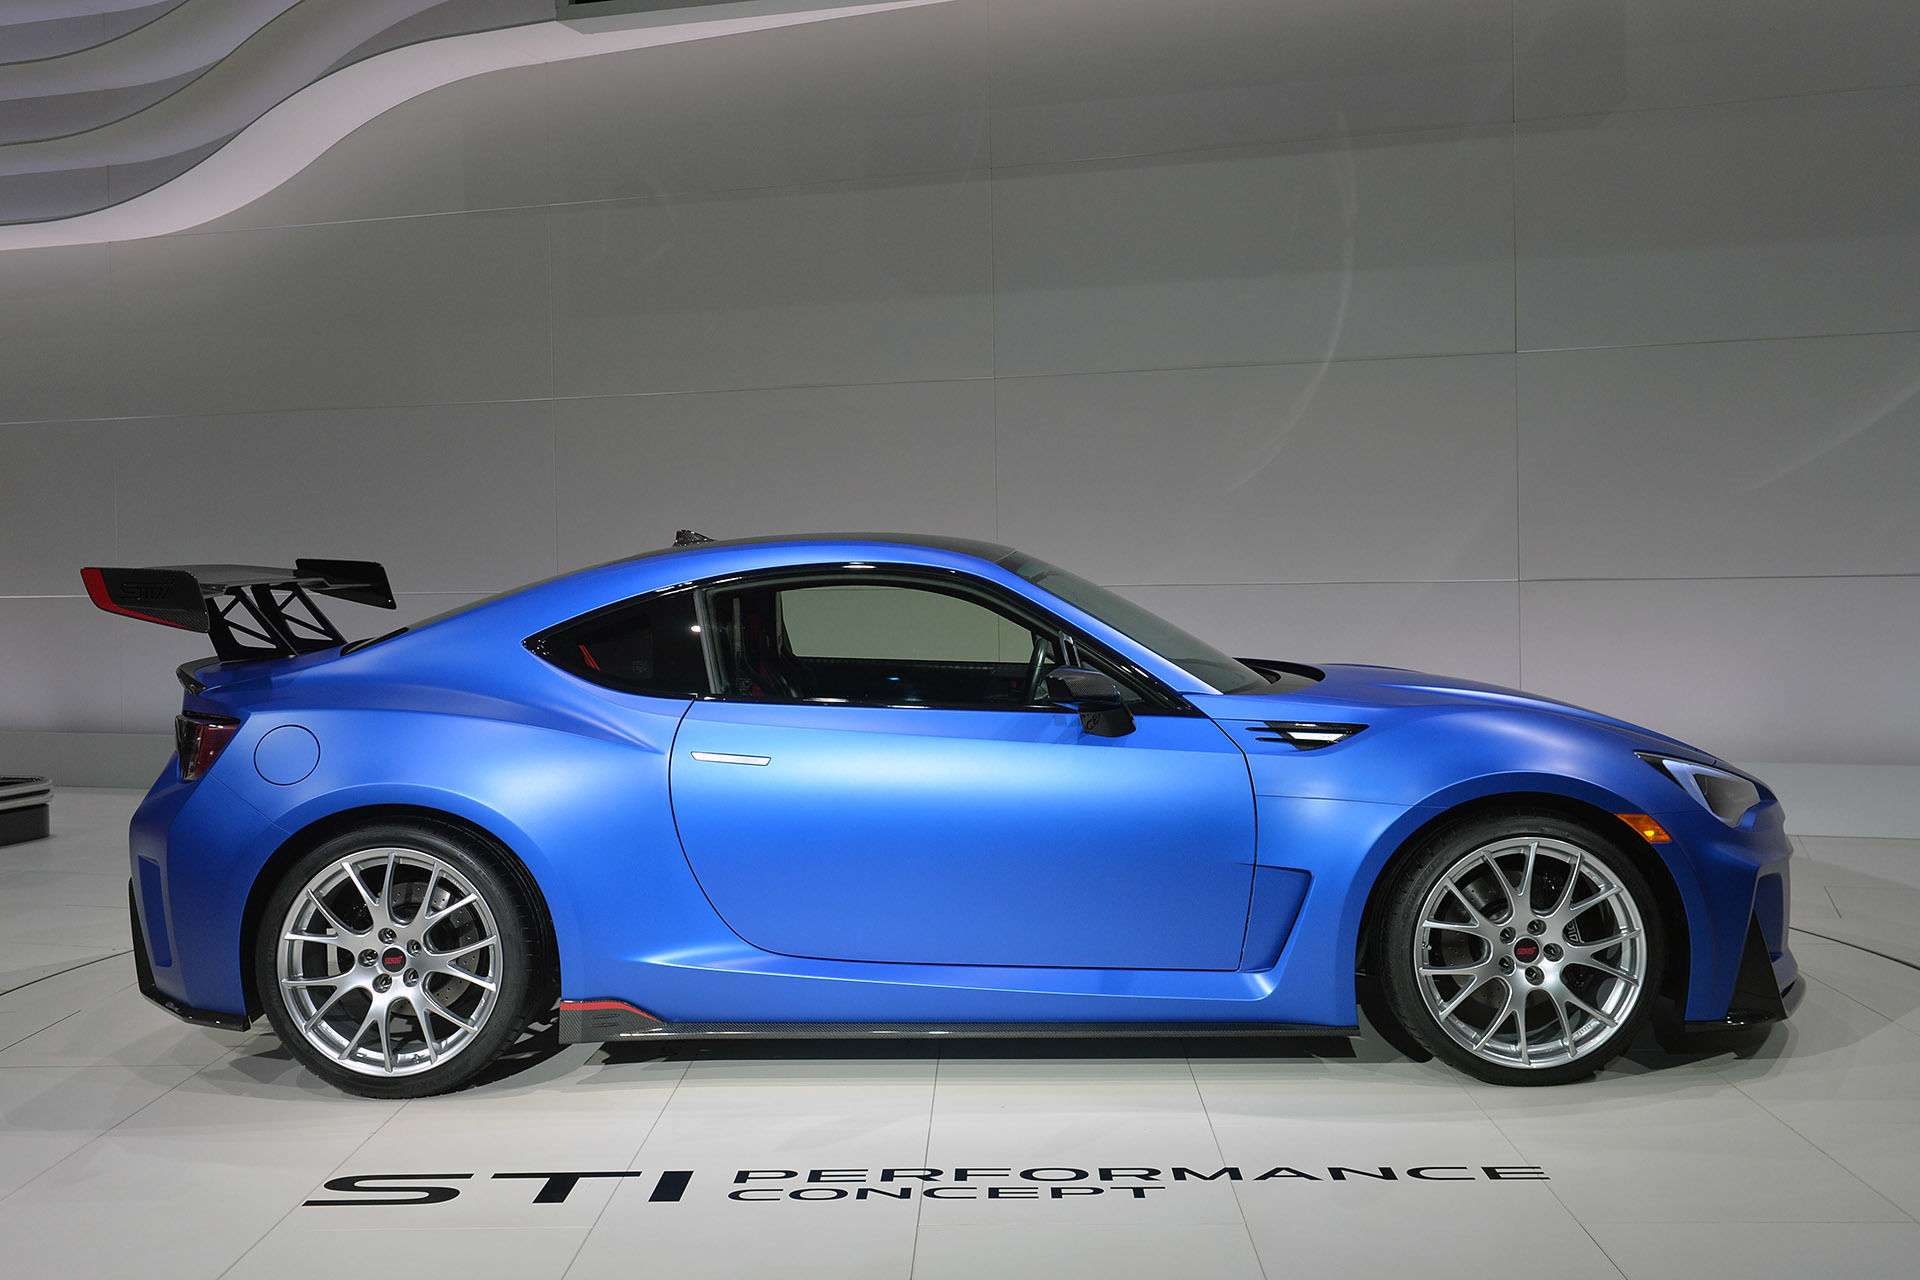 2017 Subaru BRZ STI Performance Concept new photo - 4